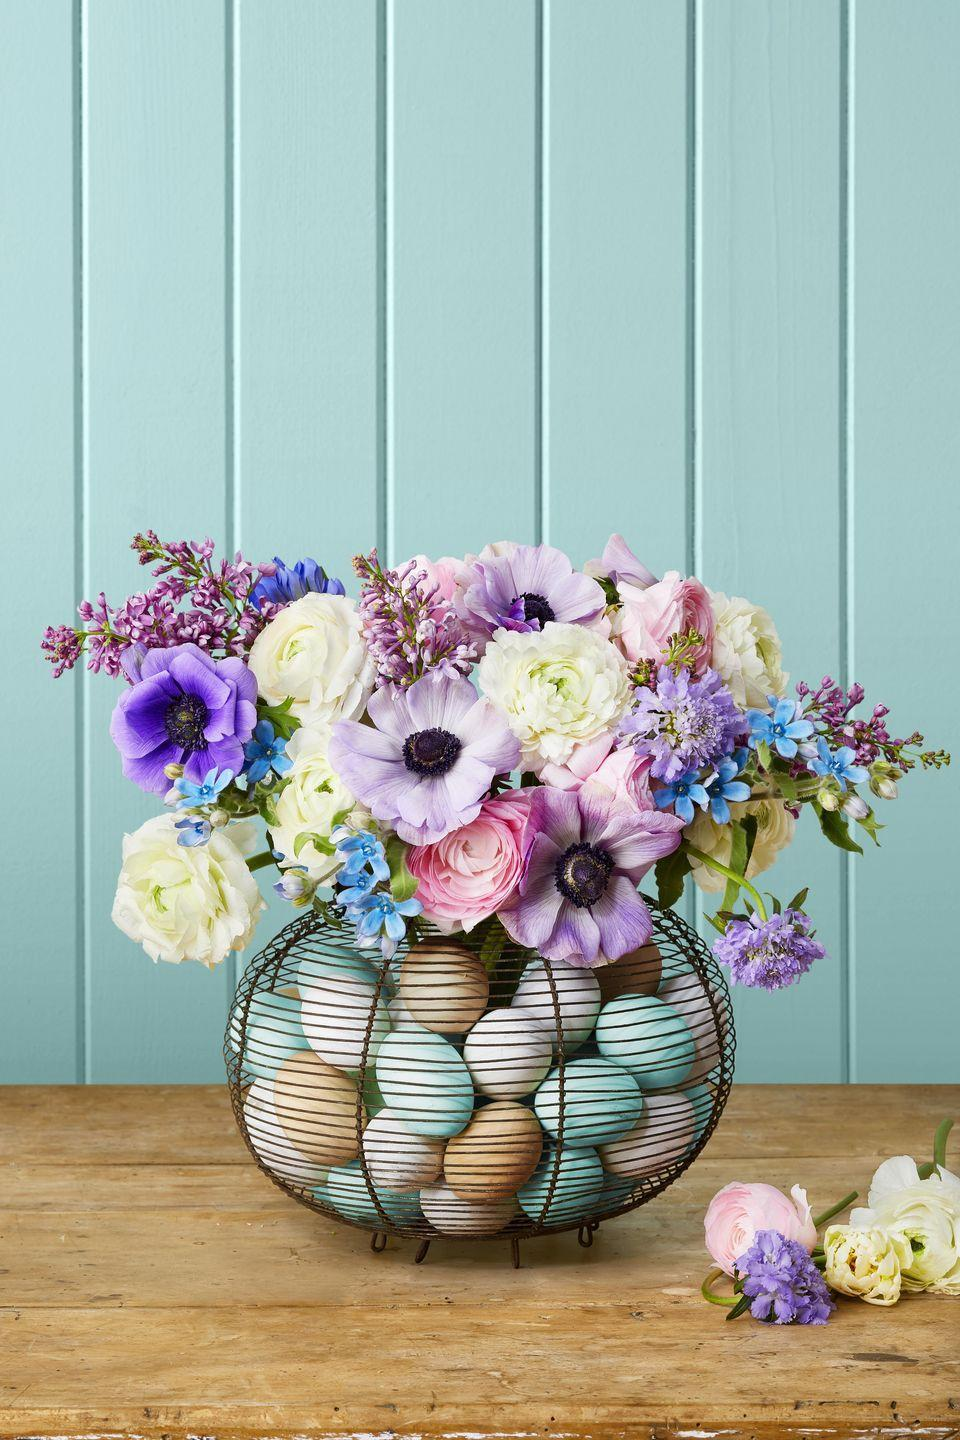 """<p>A vintage French egg collecting basket filled with colorful wooden eggs makes the perfect home for displaying your abundant spring bouquet (here are lilacs, anemones, Scabiosa lavender, allium, and ranunculus).</p><p><strong>To make:</strong> Dye or paint wooden eggs white or robin's egg blue. You can also leave a few natural. Place a vase inside the basket and surround with eggs. Fill vase with water and flowers. </p><p><a class=""""link rapid-noclick-resp"""" href=""""https://www.amazon.com/Unfinished-Unpainted-Wooden-Easter-Decorate/dp/B083GG6VQ9/ref=sr_1_7?tag=syn-yahoo-20&ascsubtag=%5Bartid%7C10050.g.1111%5Bsrc%7Cyahoo-us"""" rel=""""nofollow noopener"""" target=""""_blank"""" data-ylk=""""slk:SHOP WOODEN EGGS"""">SHOP WOODEN EGGS</a></p>"""